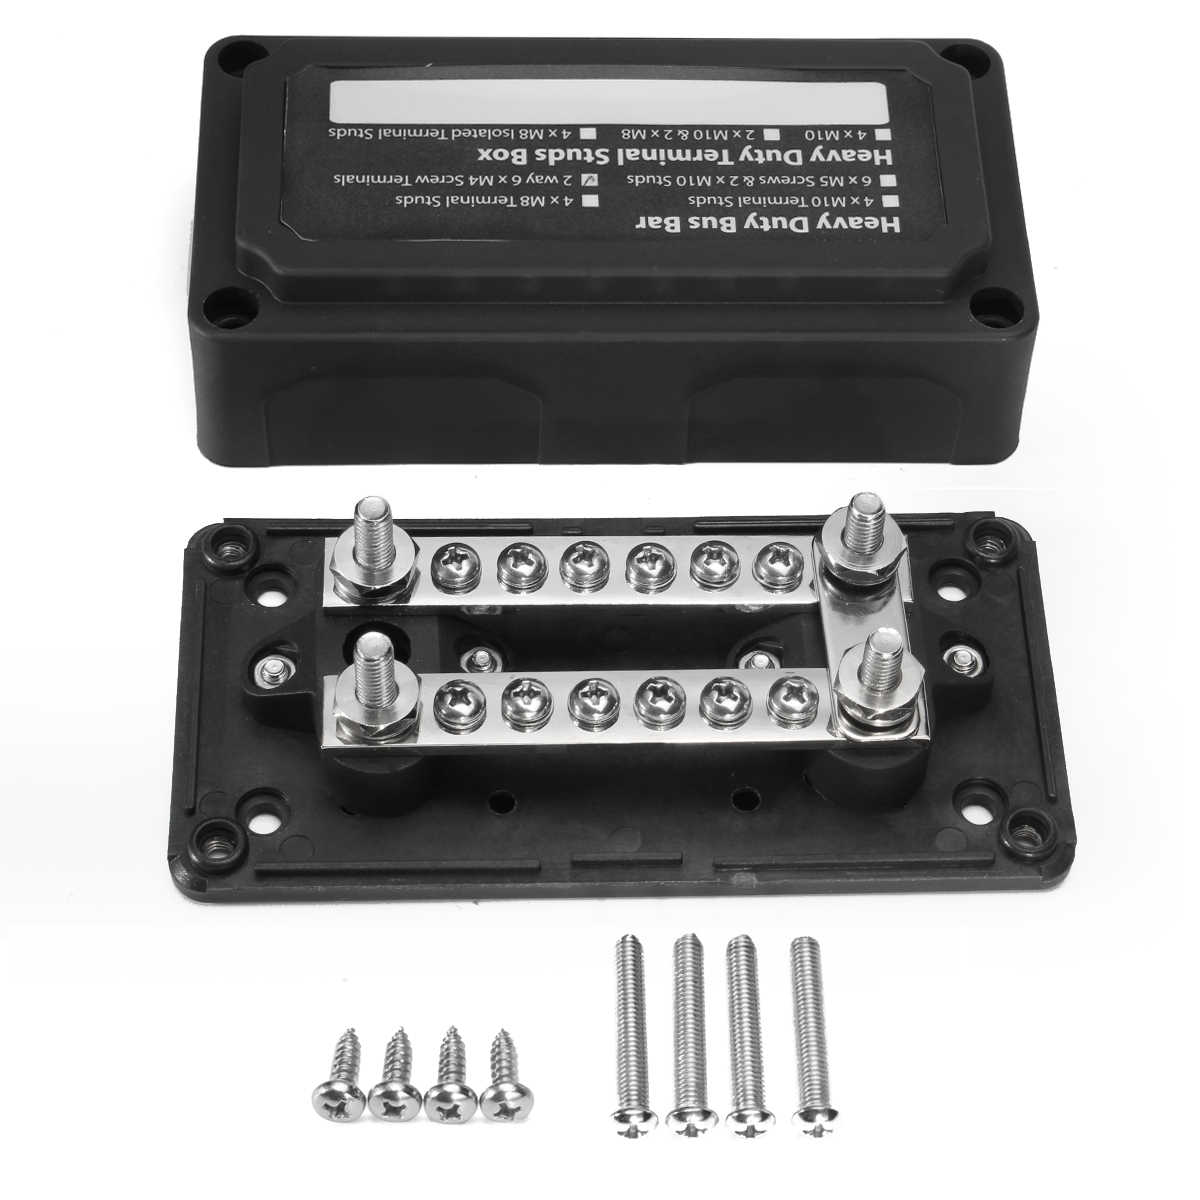 small resolution of car blade fuse box block 48v heavy duty modular design dual bus bars with connecting